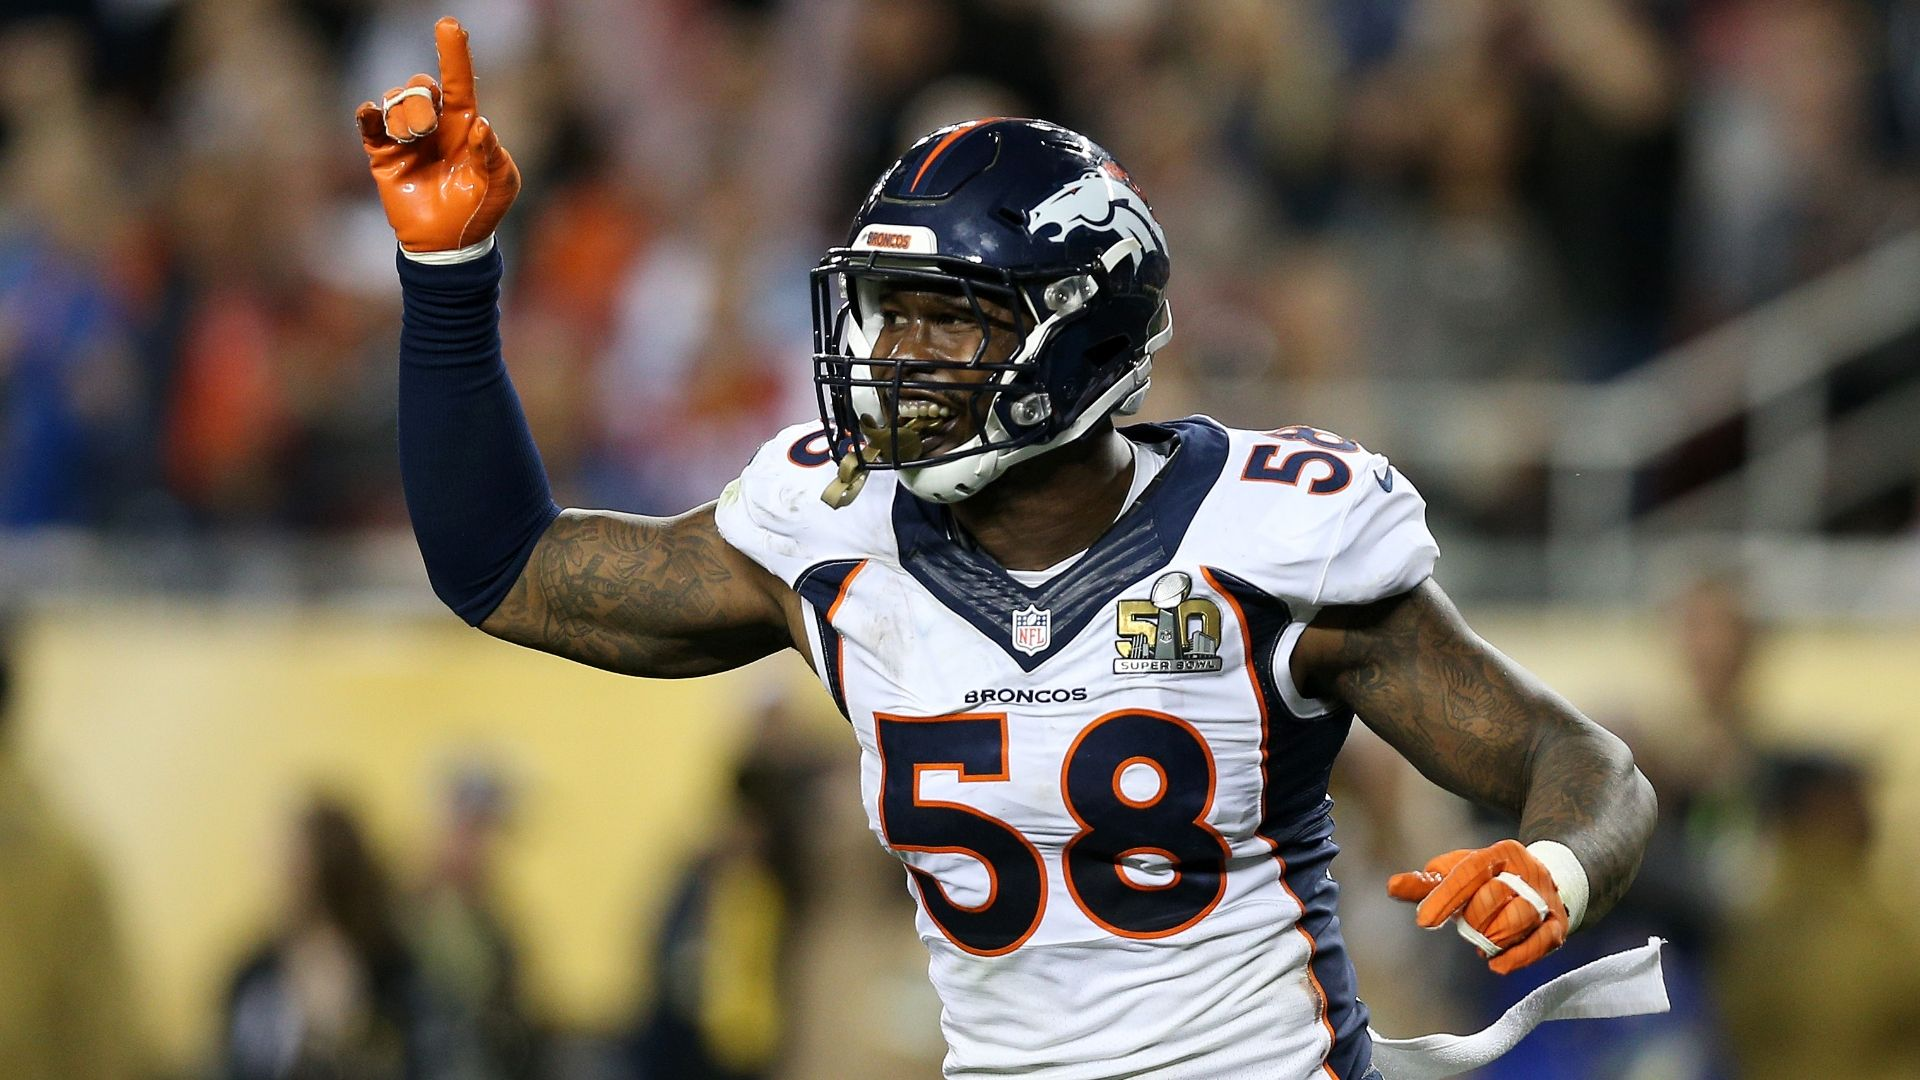 https://secure.espncdn.com/combiner/i?img=/media/motion/2016/0608/dm_160608_nfl_von_miller_contract_discussion/dm_160608_nfl_von_miller_contract_discussion.jpg